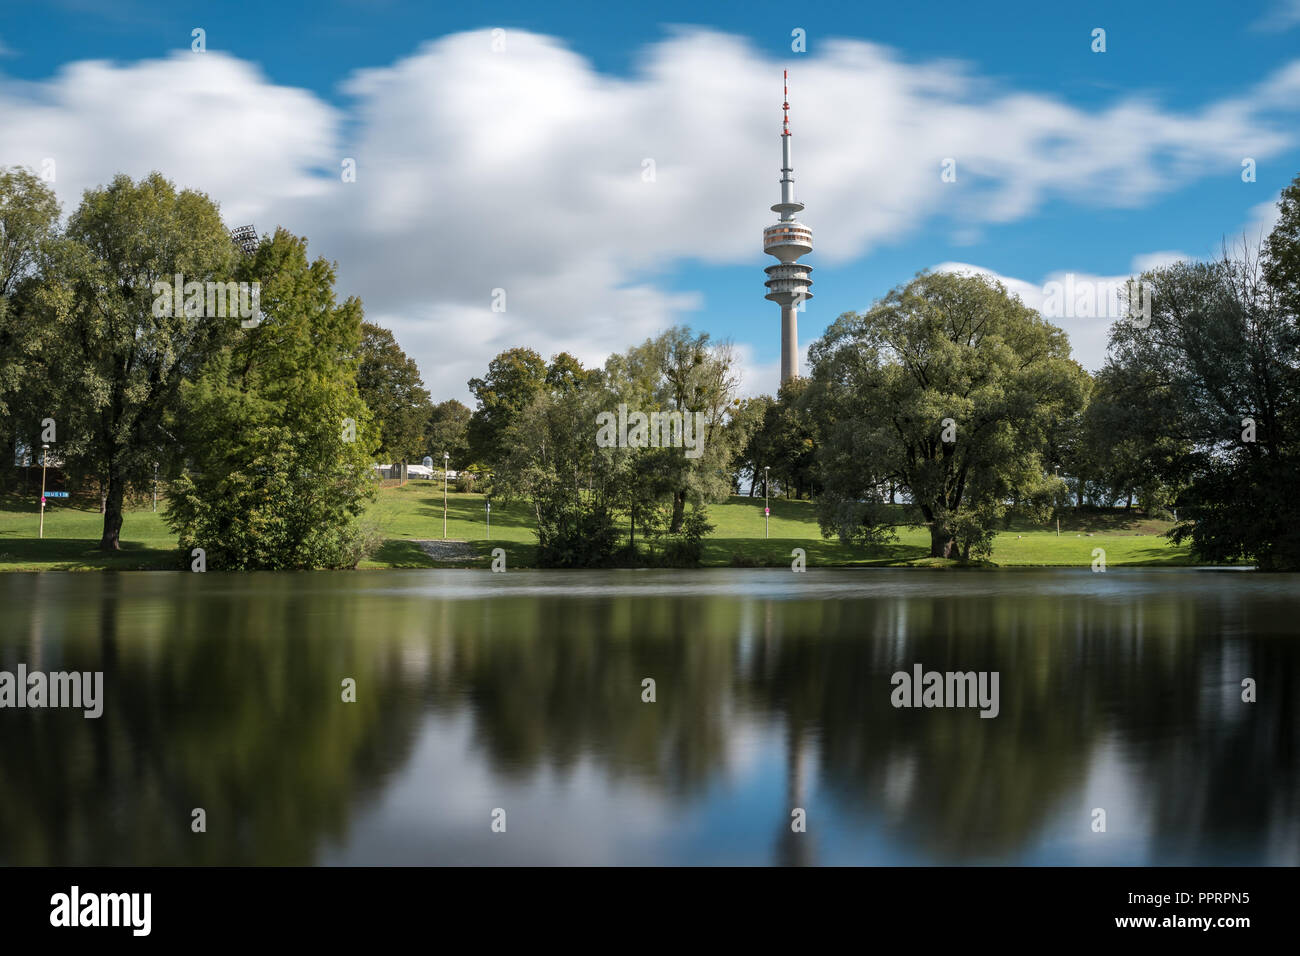 Munich Olympic Tower long exposure with the lake in the foreground. - Stock Image